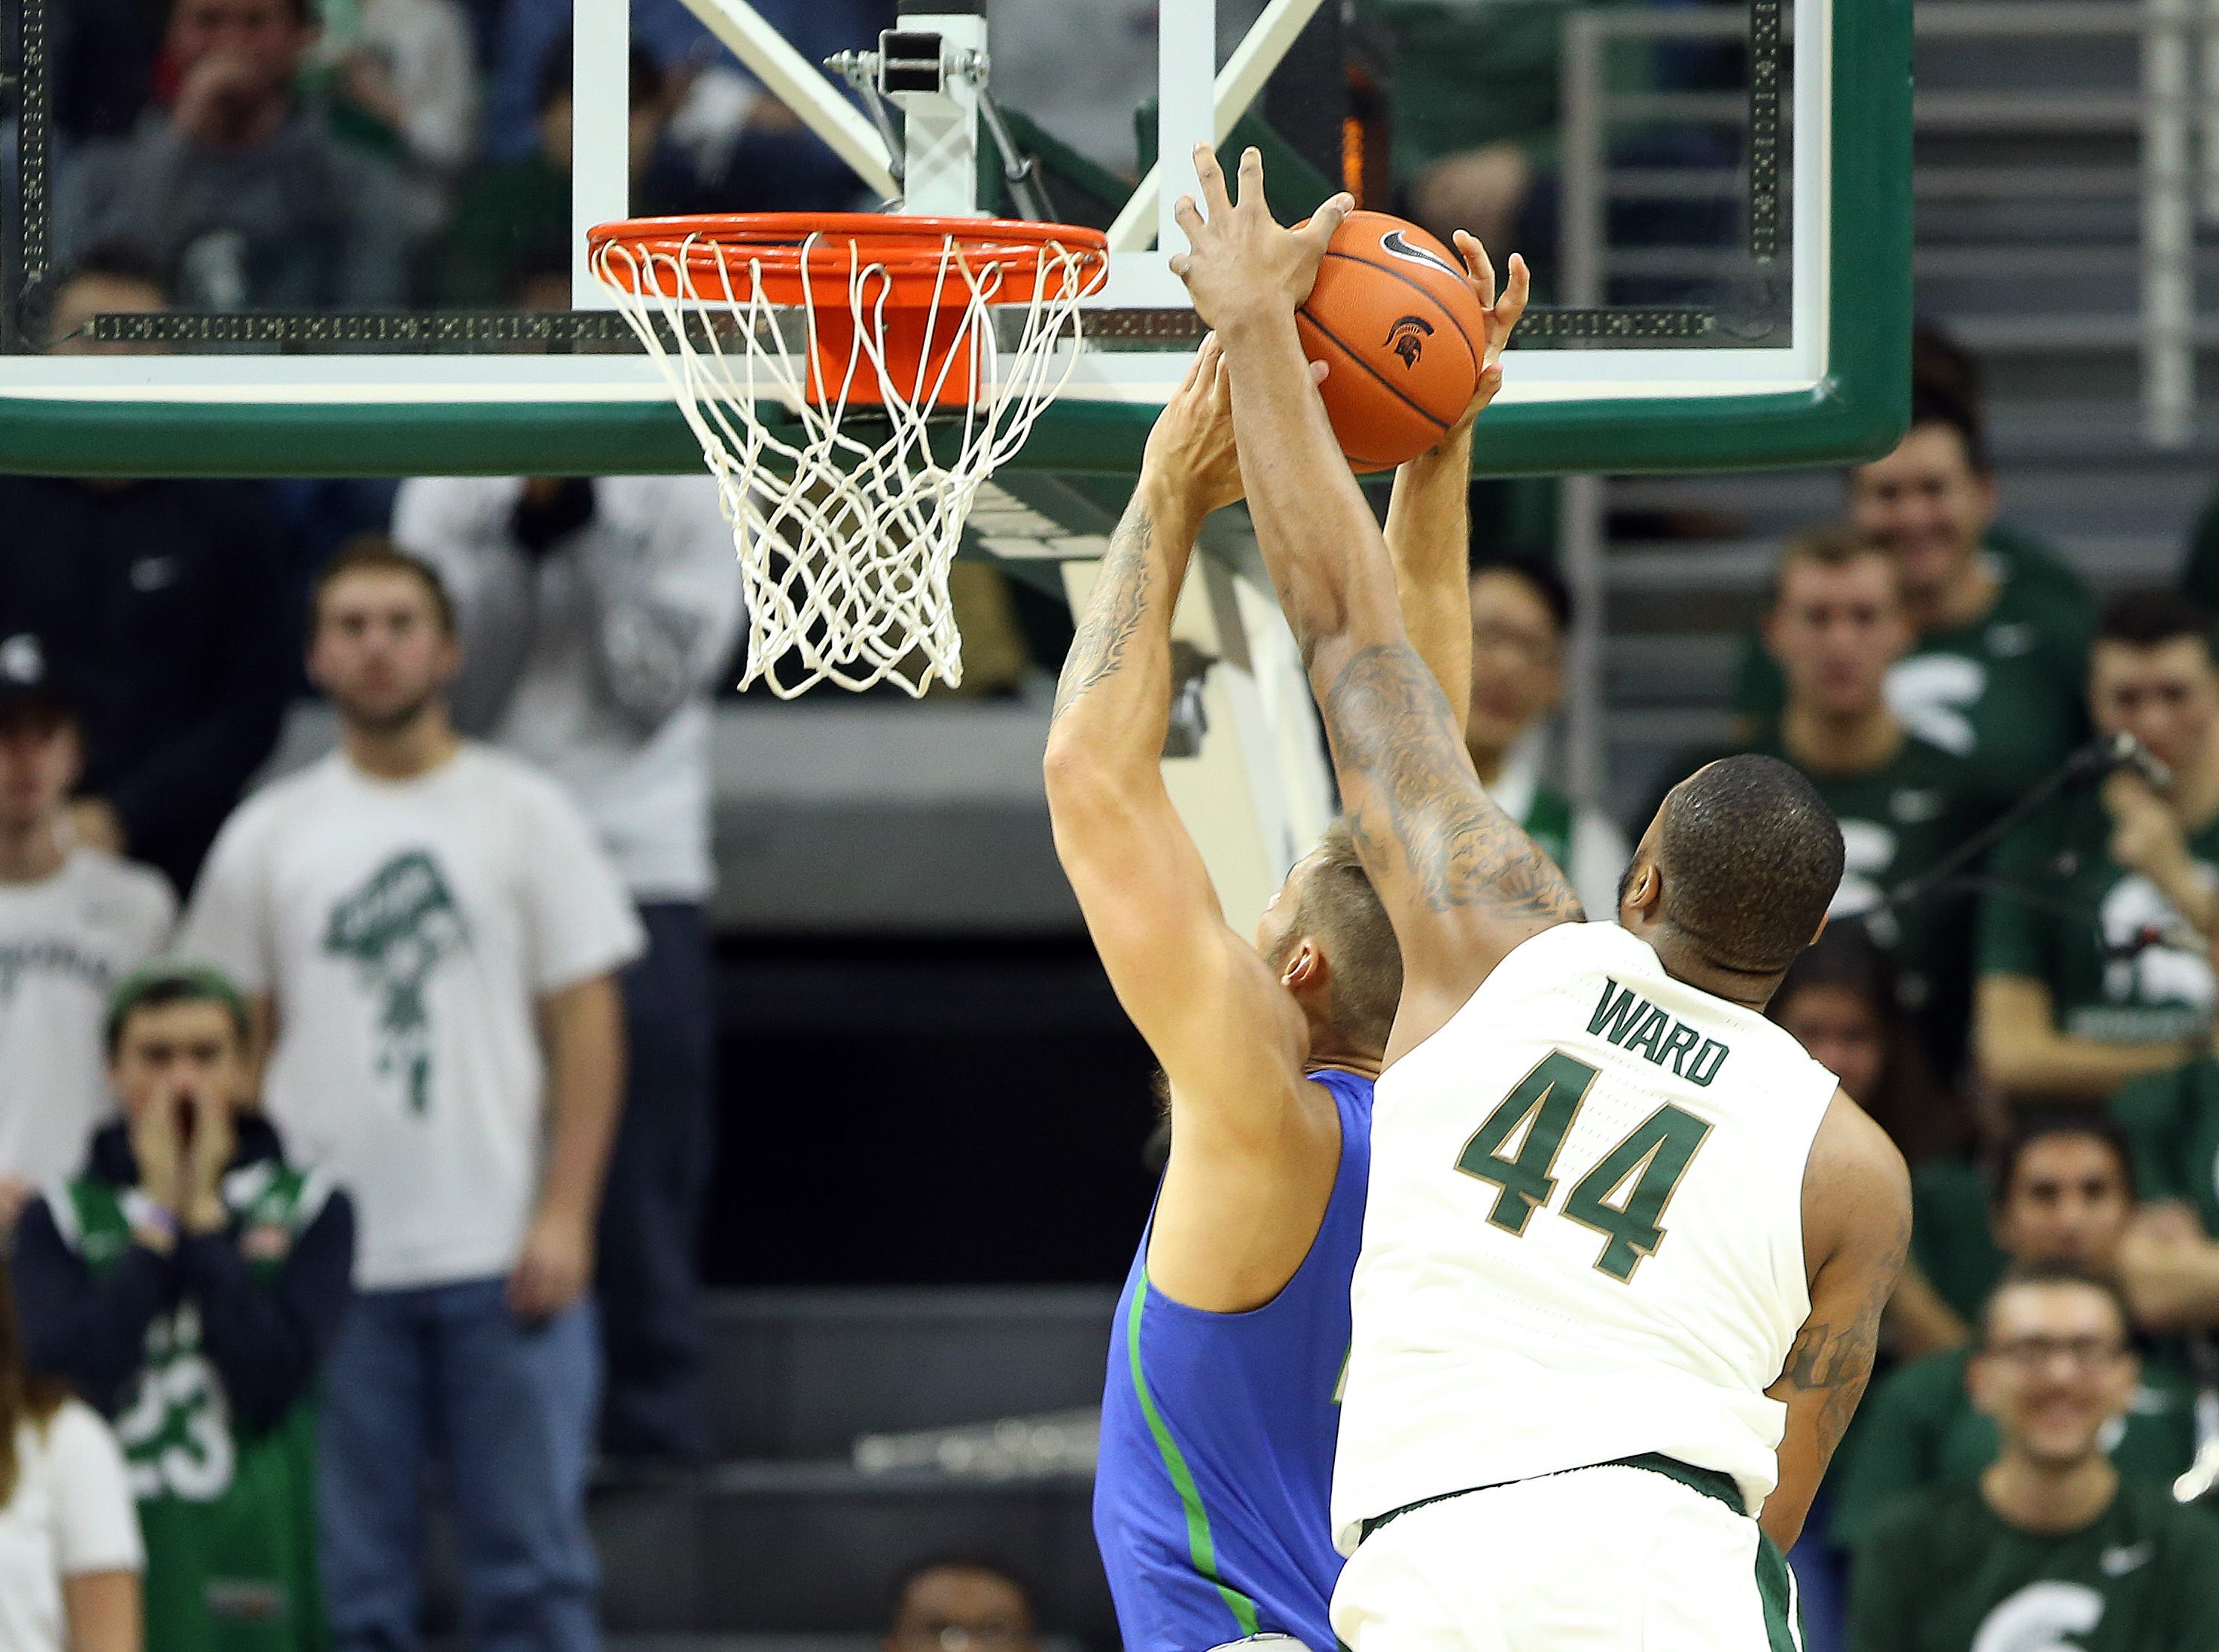 Nov 11, 2018; East Lansing, MI, USA; Michigan State Spartans forward Nick Ward (44) blocks the shot of Florida Gulf Coast Eagles guard Schadrac Casimir (11)during the second half of a game at the Breslin Center. Mandatory Credit: Mike Carter-USA TODAY Sports